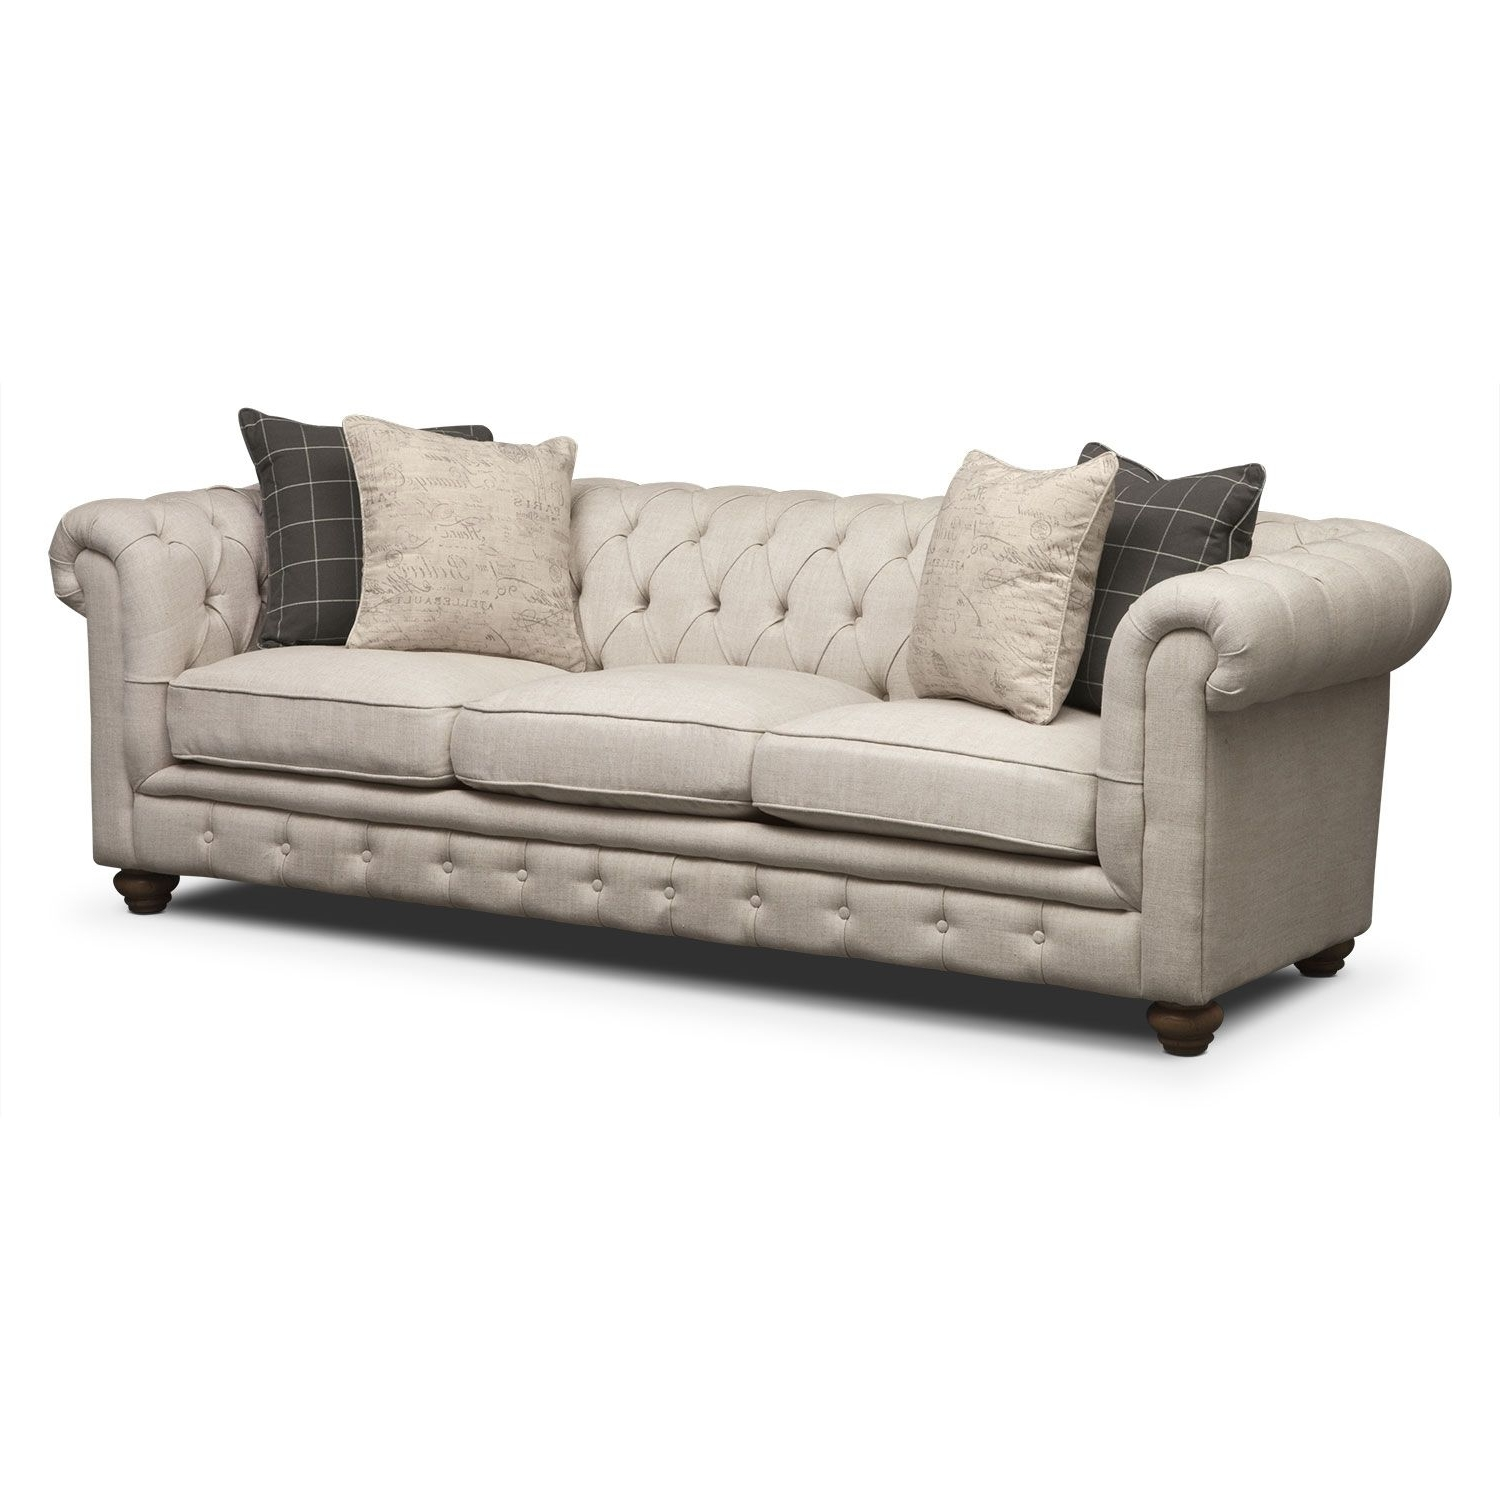 Value City Sofas Regarding Current Living Room Furniture – Madeline Sofa; $799. Living Room (View 7 of 15)